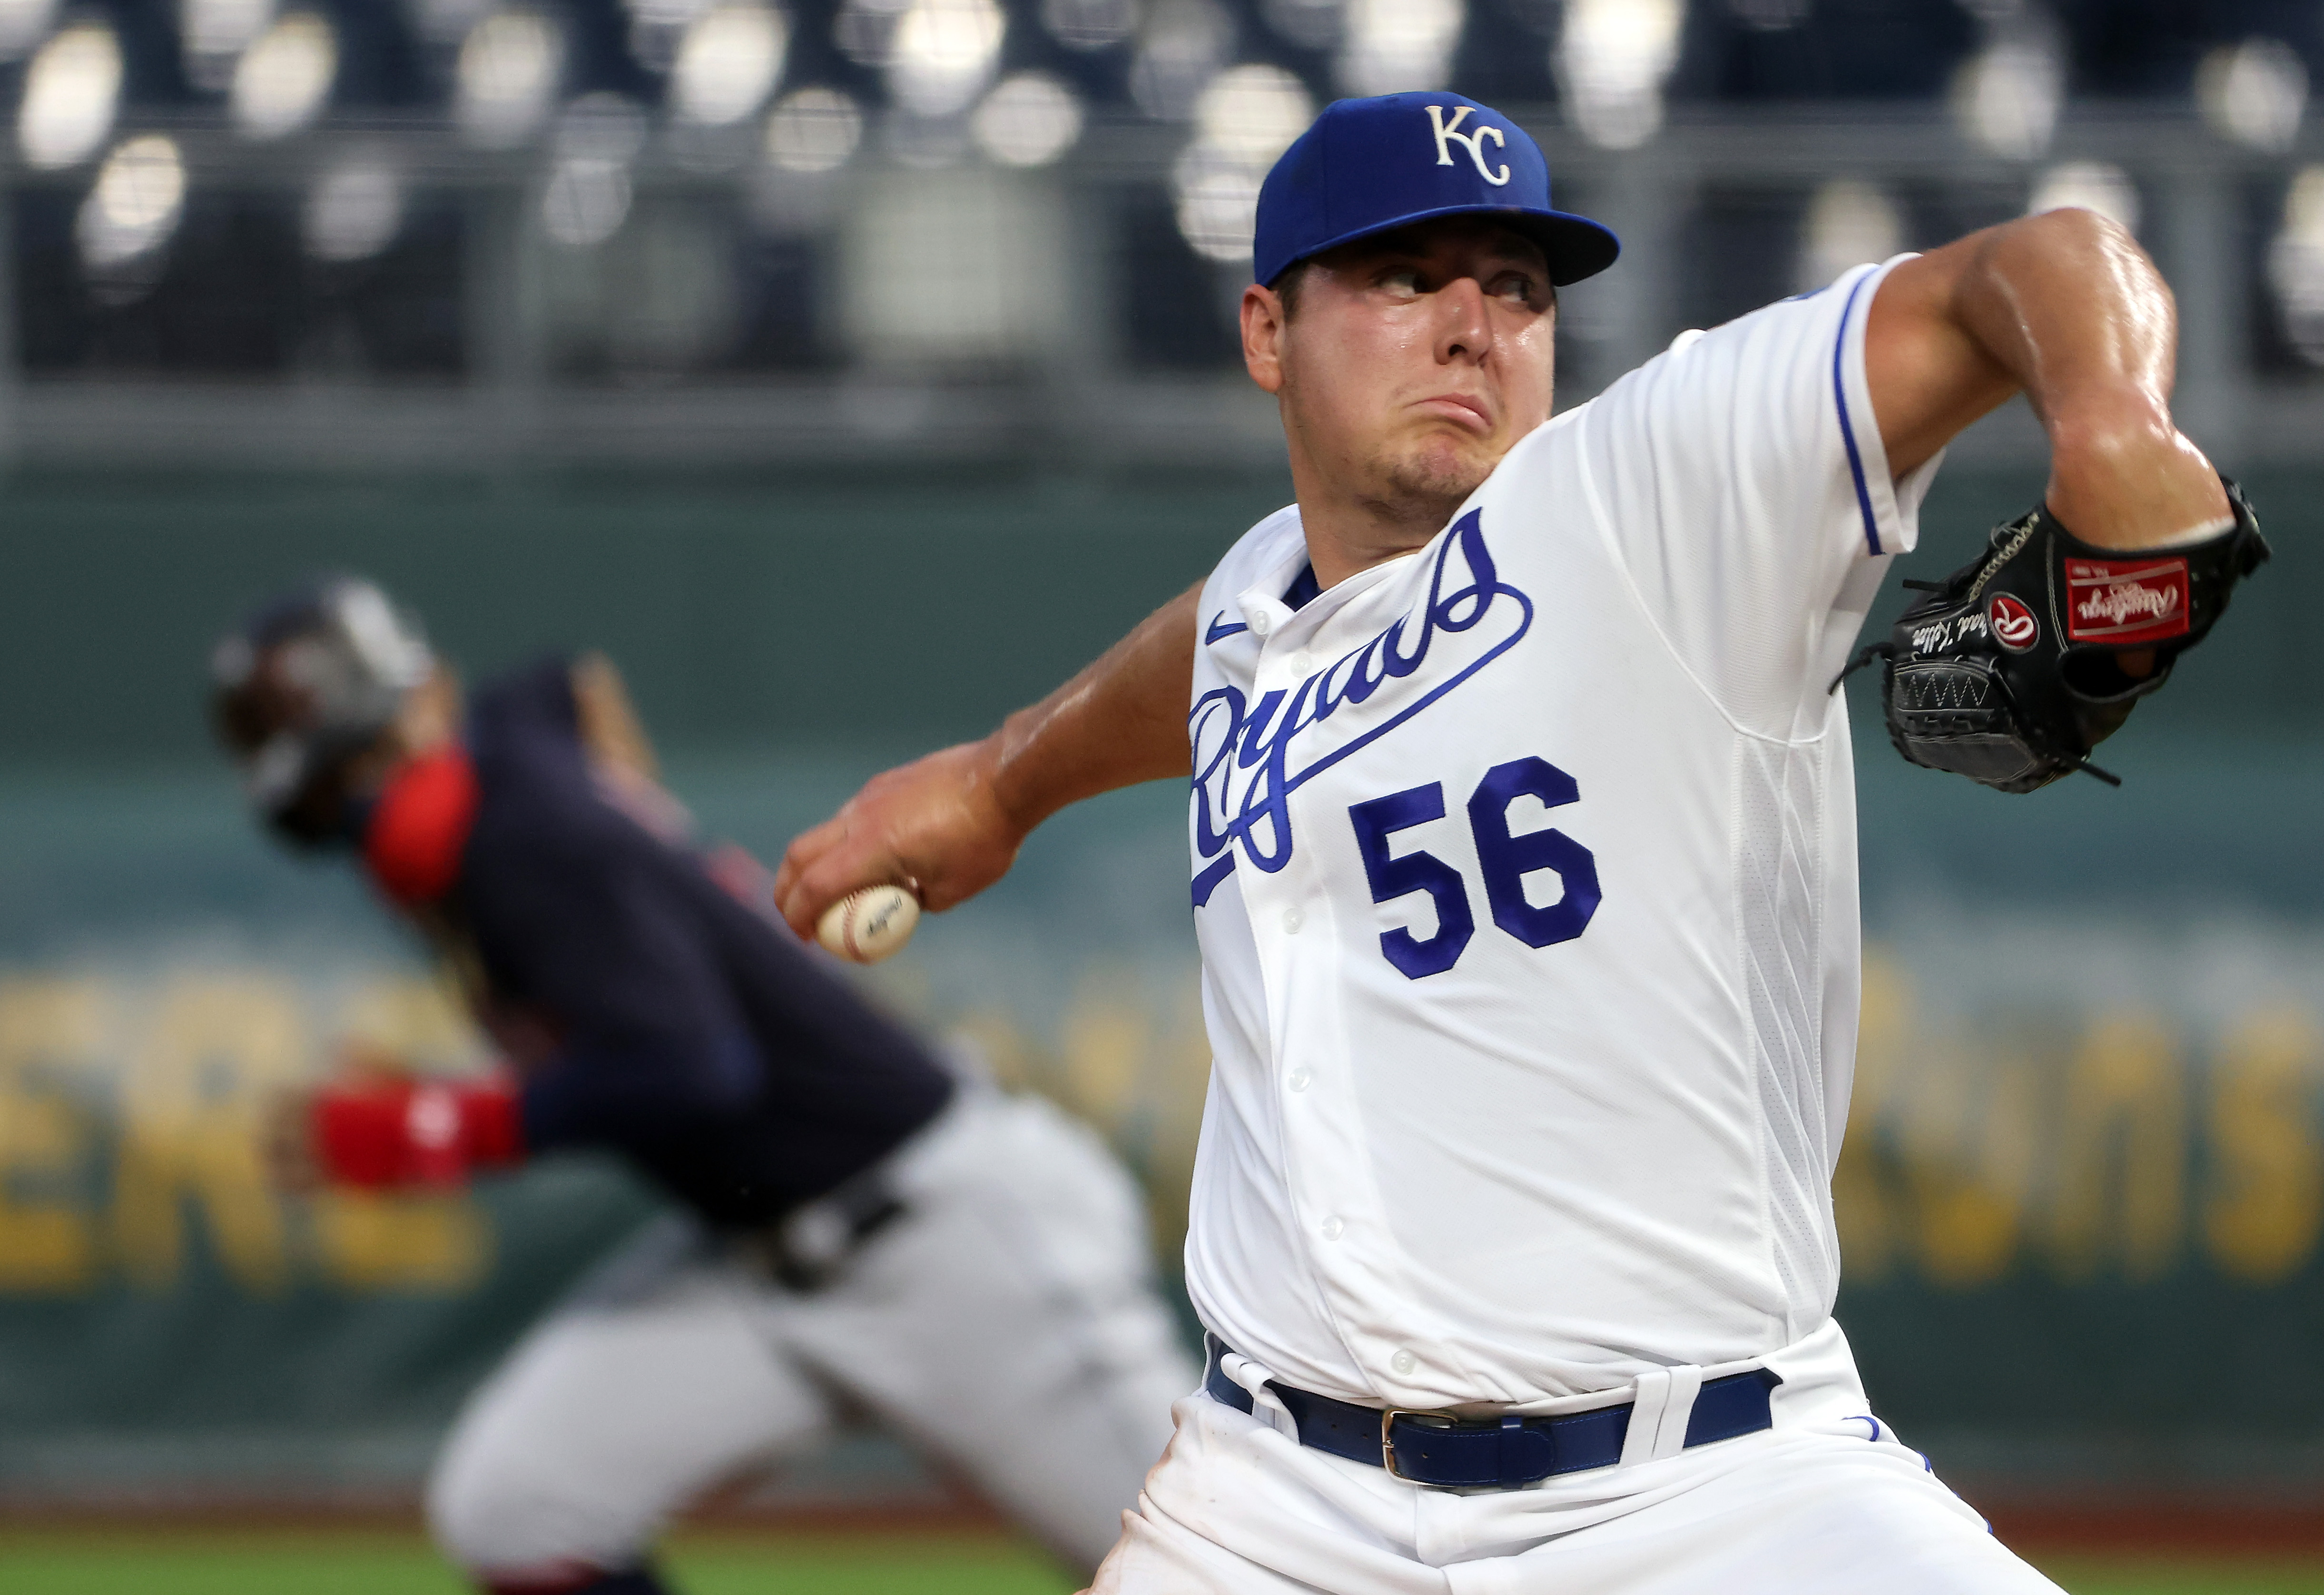 Starting pitcher Brad Keller #56 of the Kansas City Royals pitches as Francisco Lindor #12 of the Cleveland Indians breaks for second during the 1st inning of the game at Kauffman Stadium on August 31, 2020 in Kansas City, Missouri.